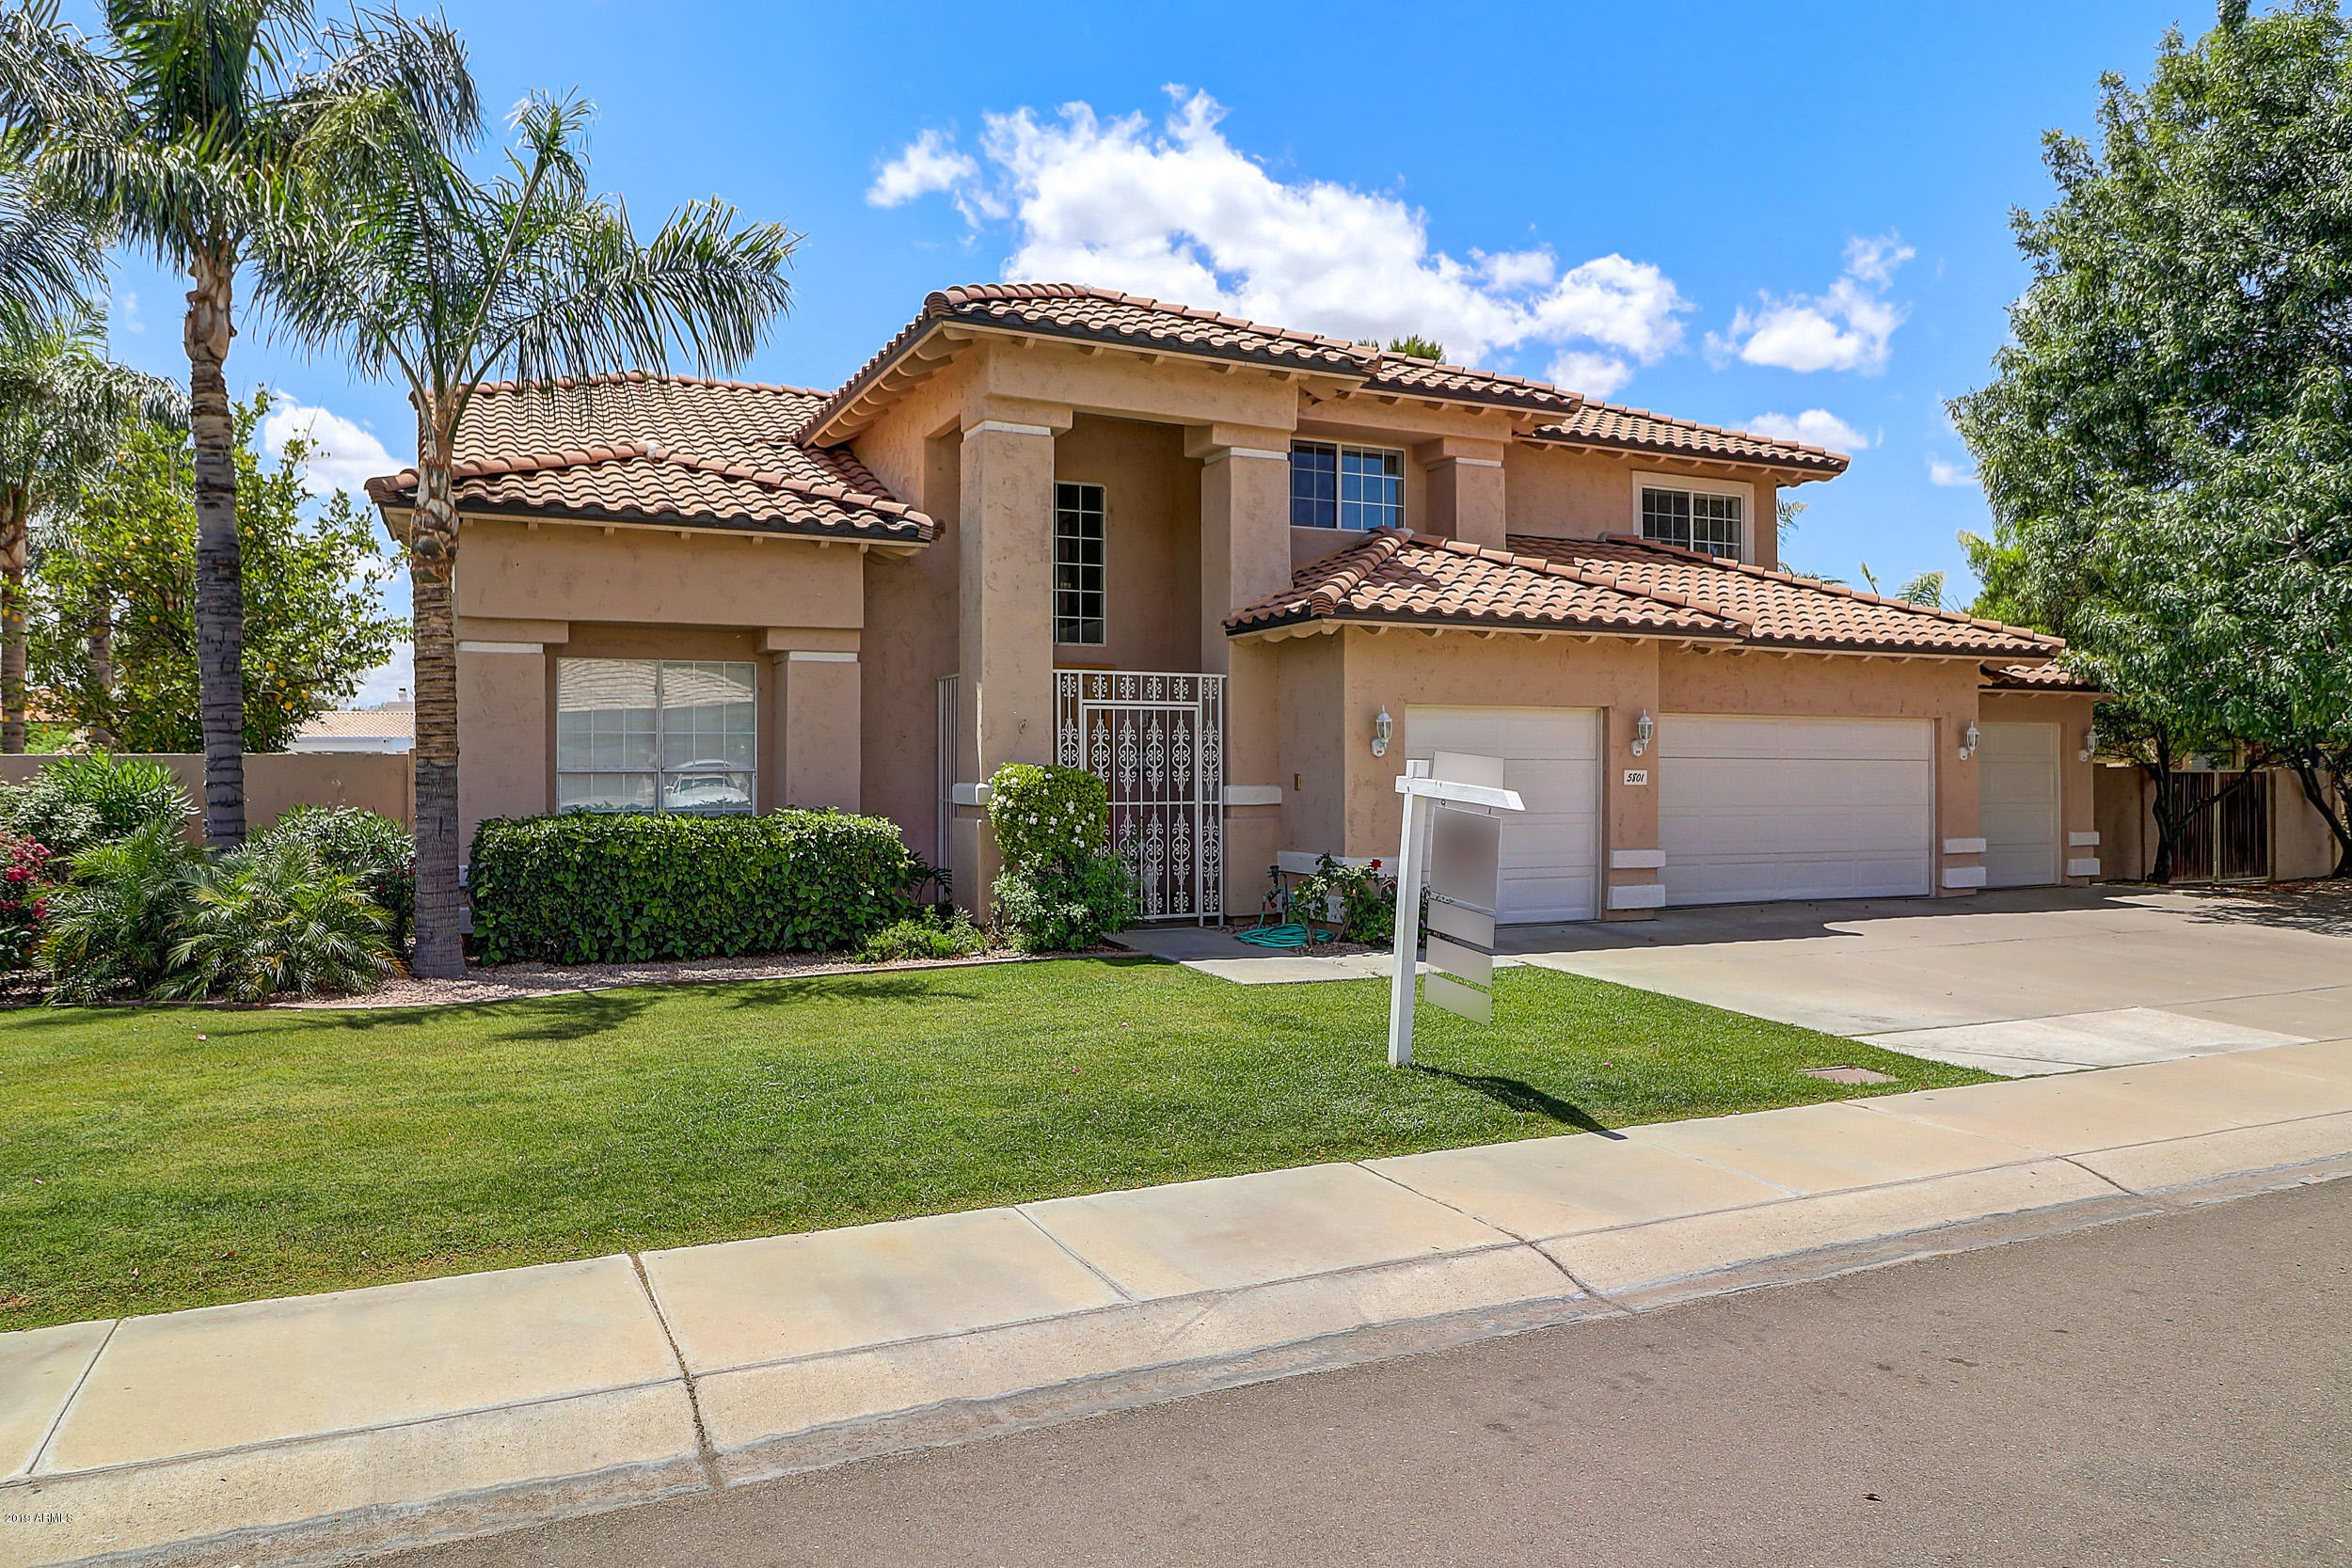 Photo of 5801 W MELINDA Lane, Glendale, AZ 85308